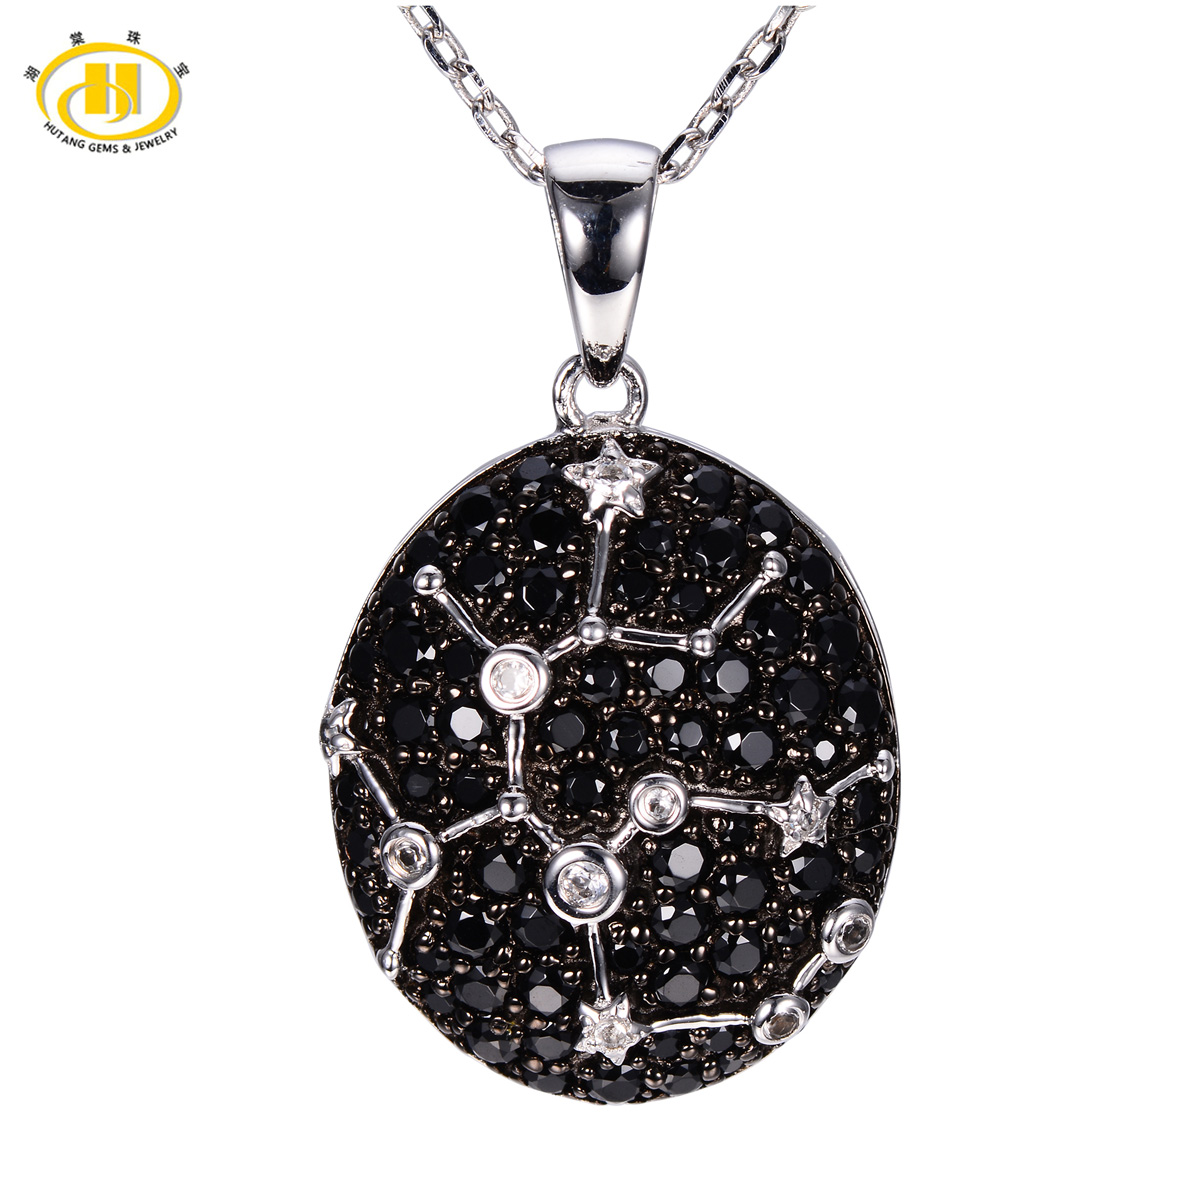 Hutang 12 Constellation Necklace Sagittarius Zodiac Black Spinel Topaz Gemstone Necklaces & Pendants Silver 925 Jewelry Gift